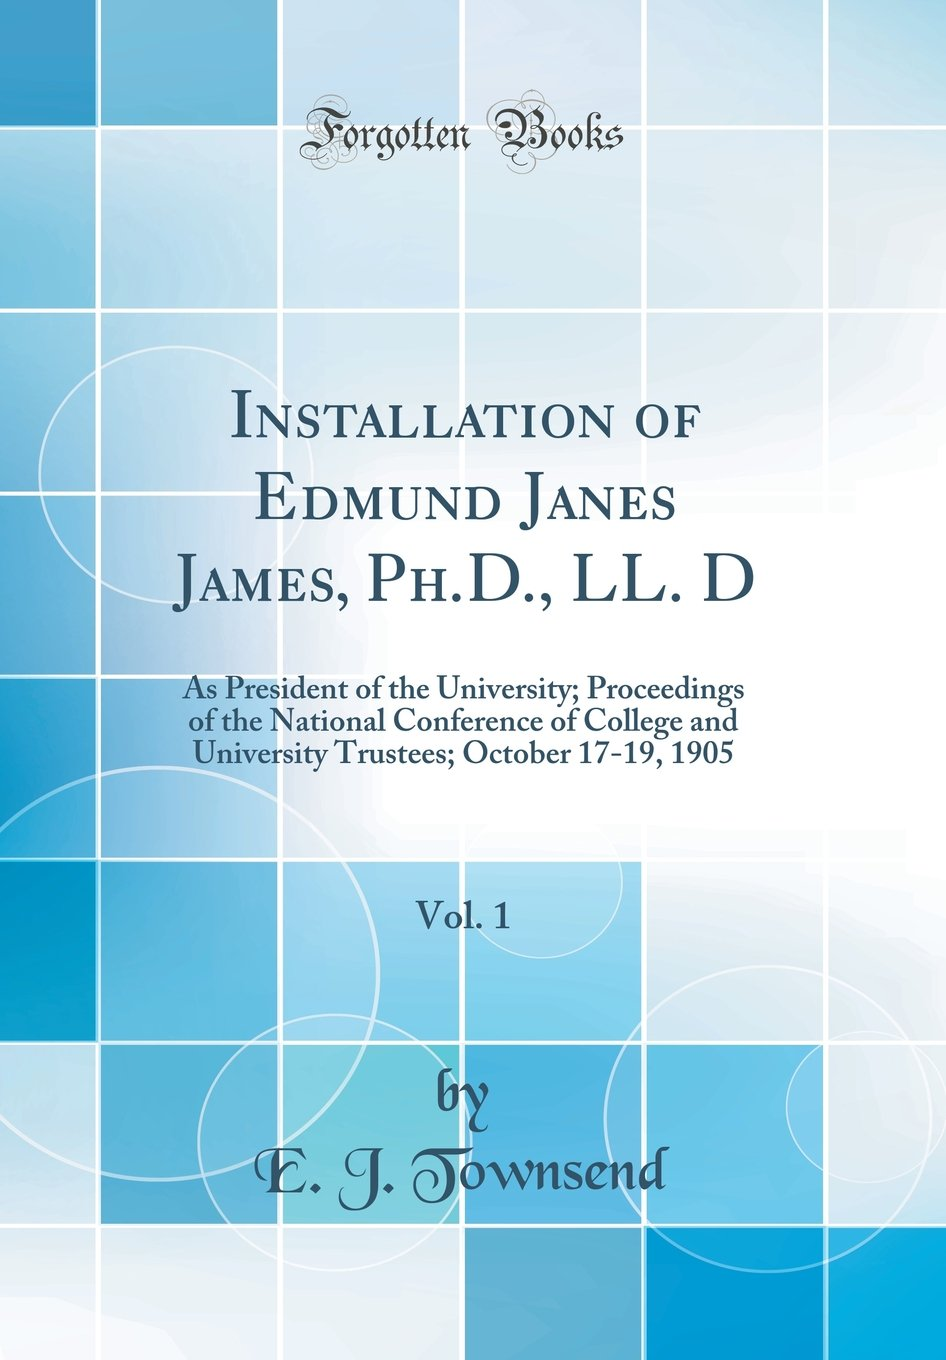 Download Installation of Edmund Janes James, Ph.D., LL. D, Vol. 1: As President of the University; Proceedings of the National Conference of College and ... October 17-19, 1905 (Classic Reprint) PDF